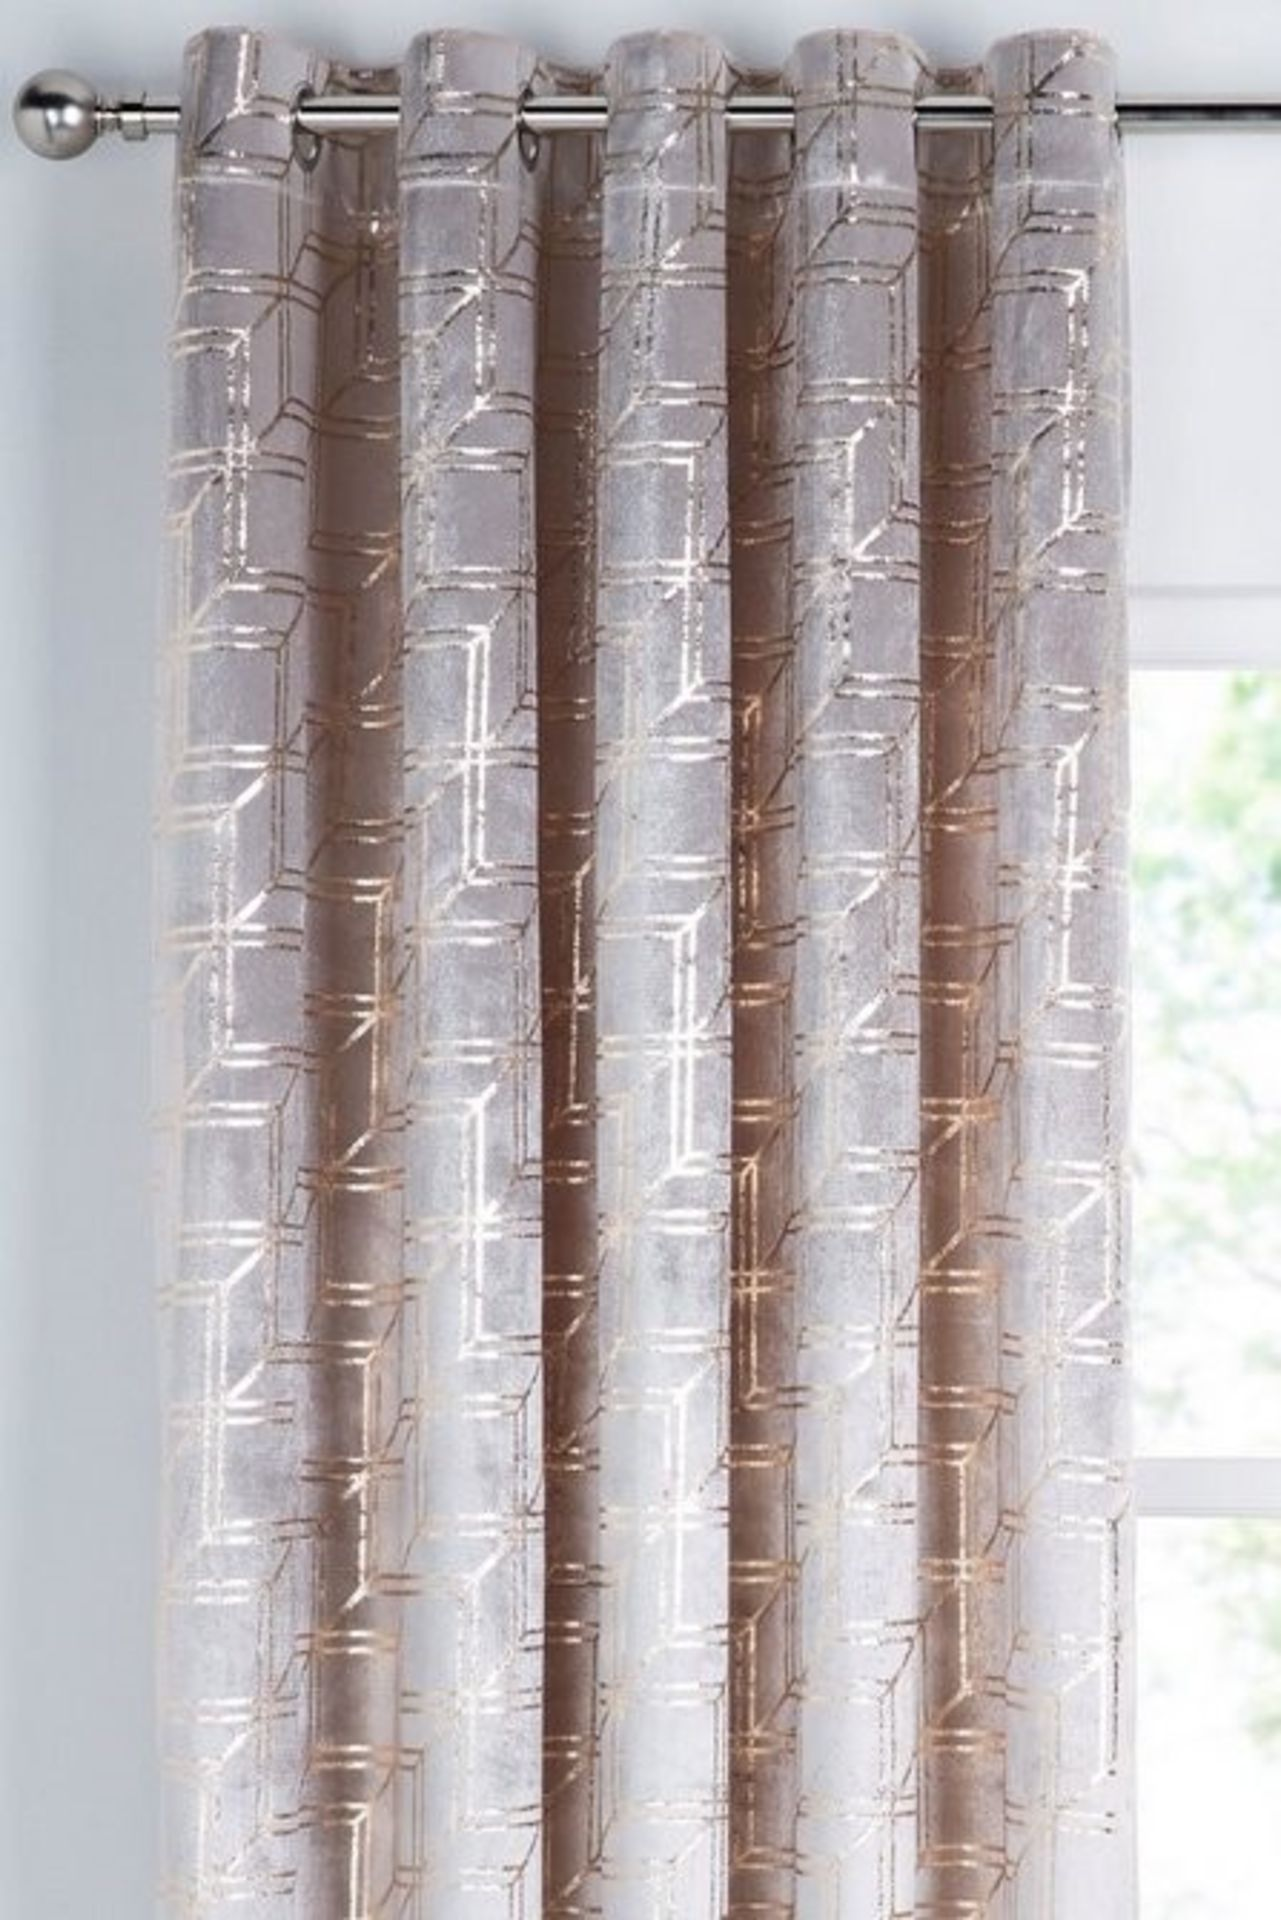 """Lot 27 - 1 BAGGED METALLIC CUBES VELVET EYELES CURTAINS IN NATURAL / 90X90"""" / RRP £110.00 (PUBLIC VIEWING"""